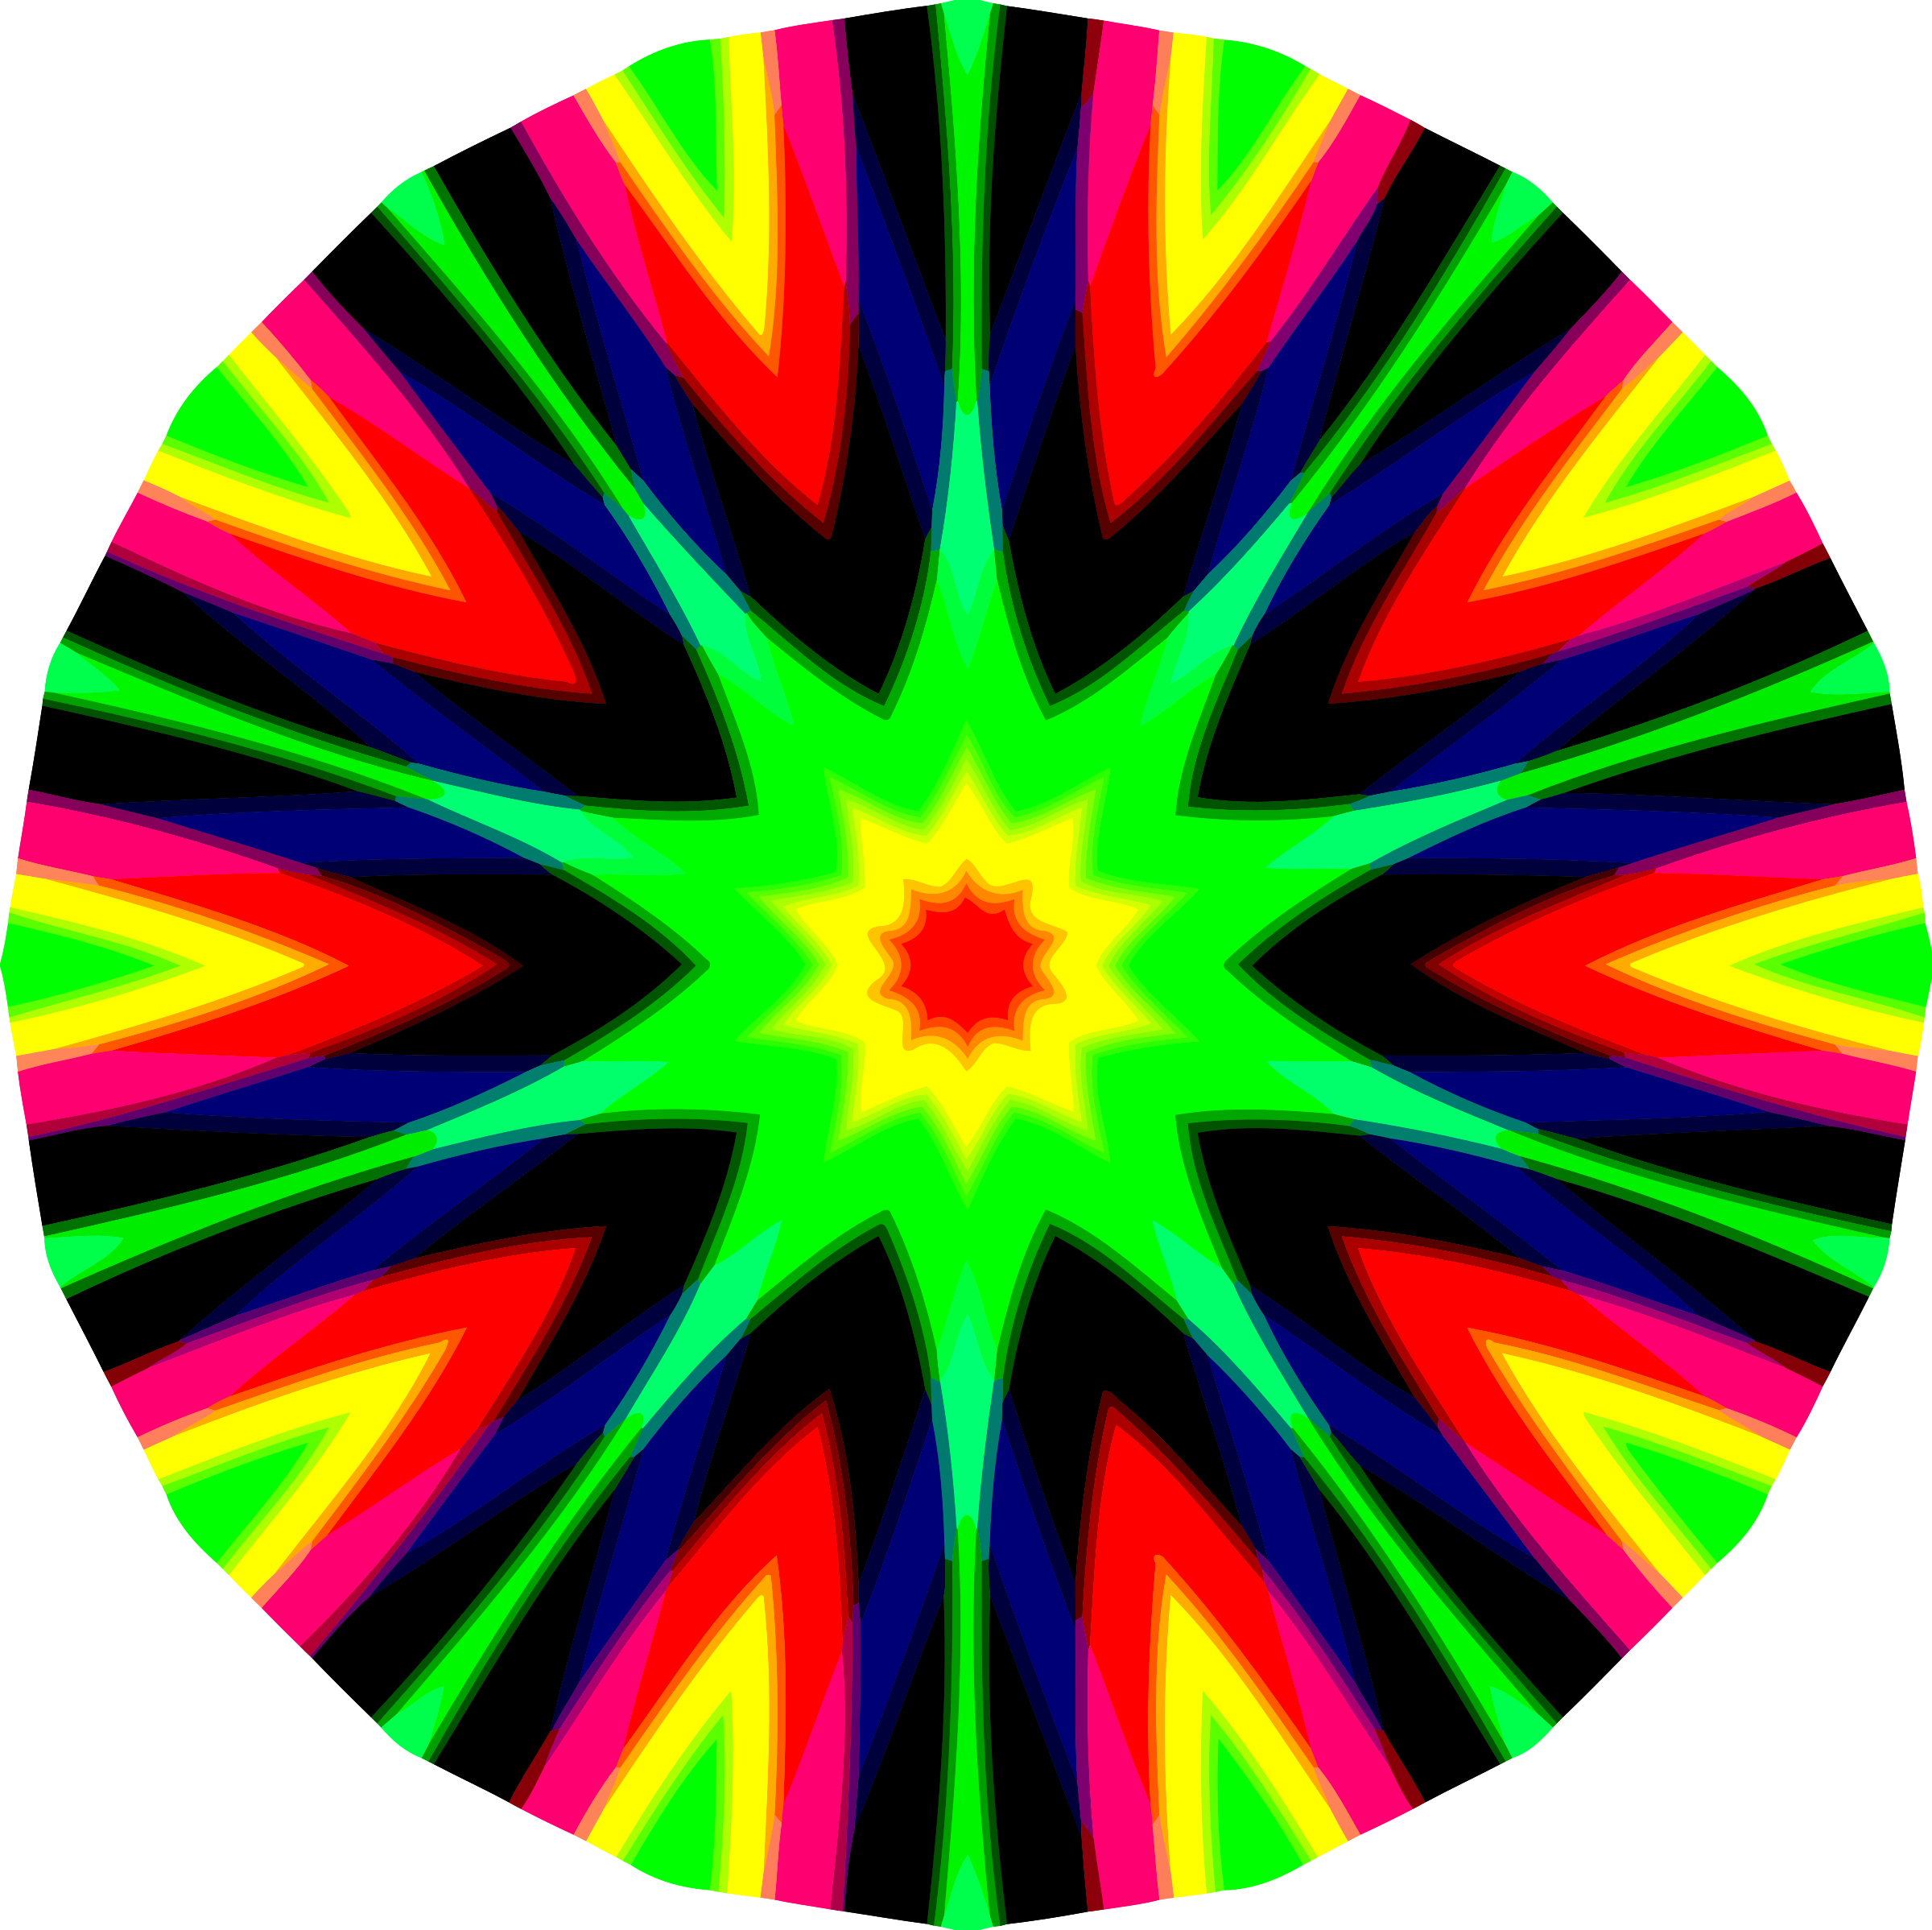 Colourful mandala 2 by Firkin